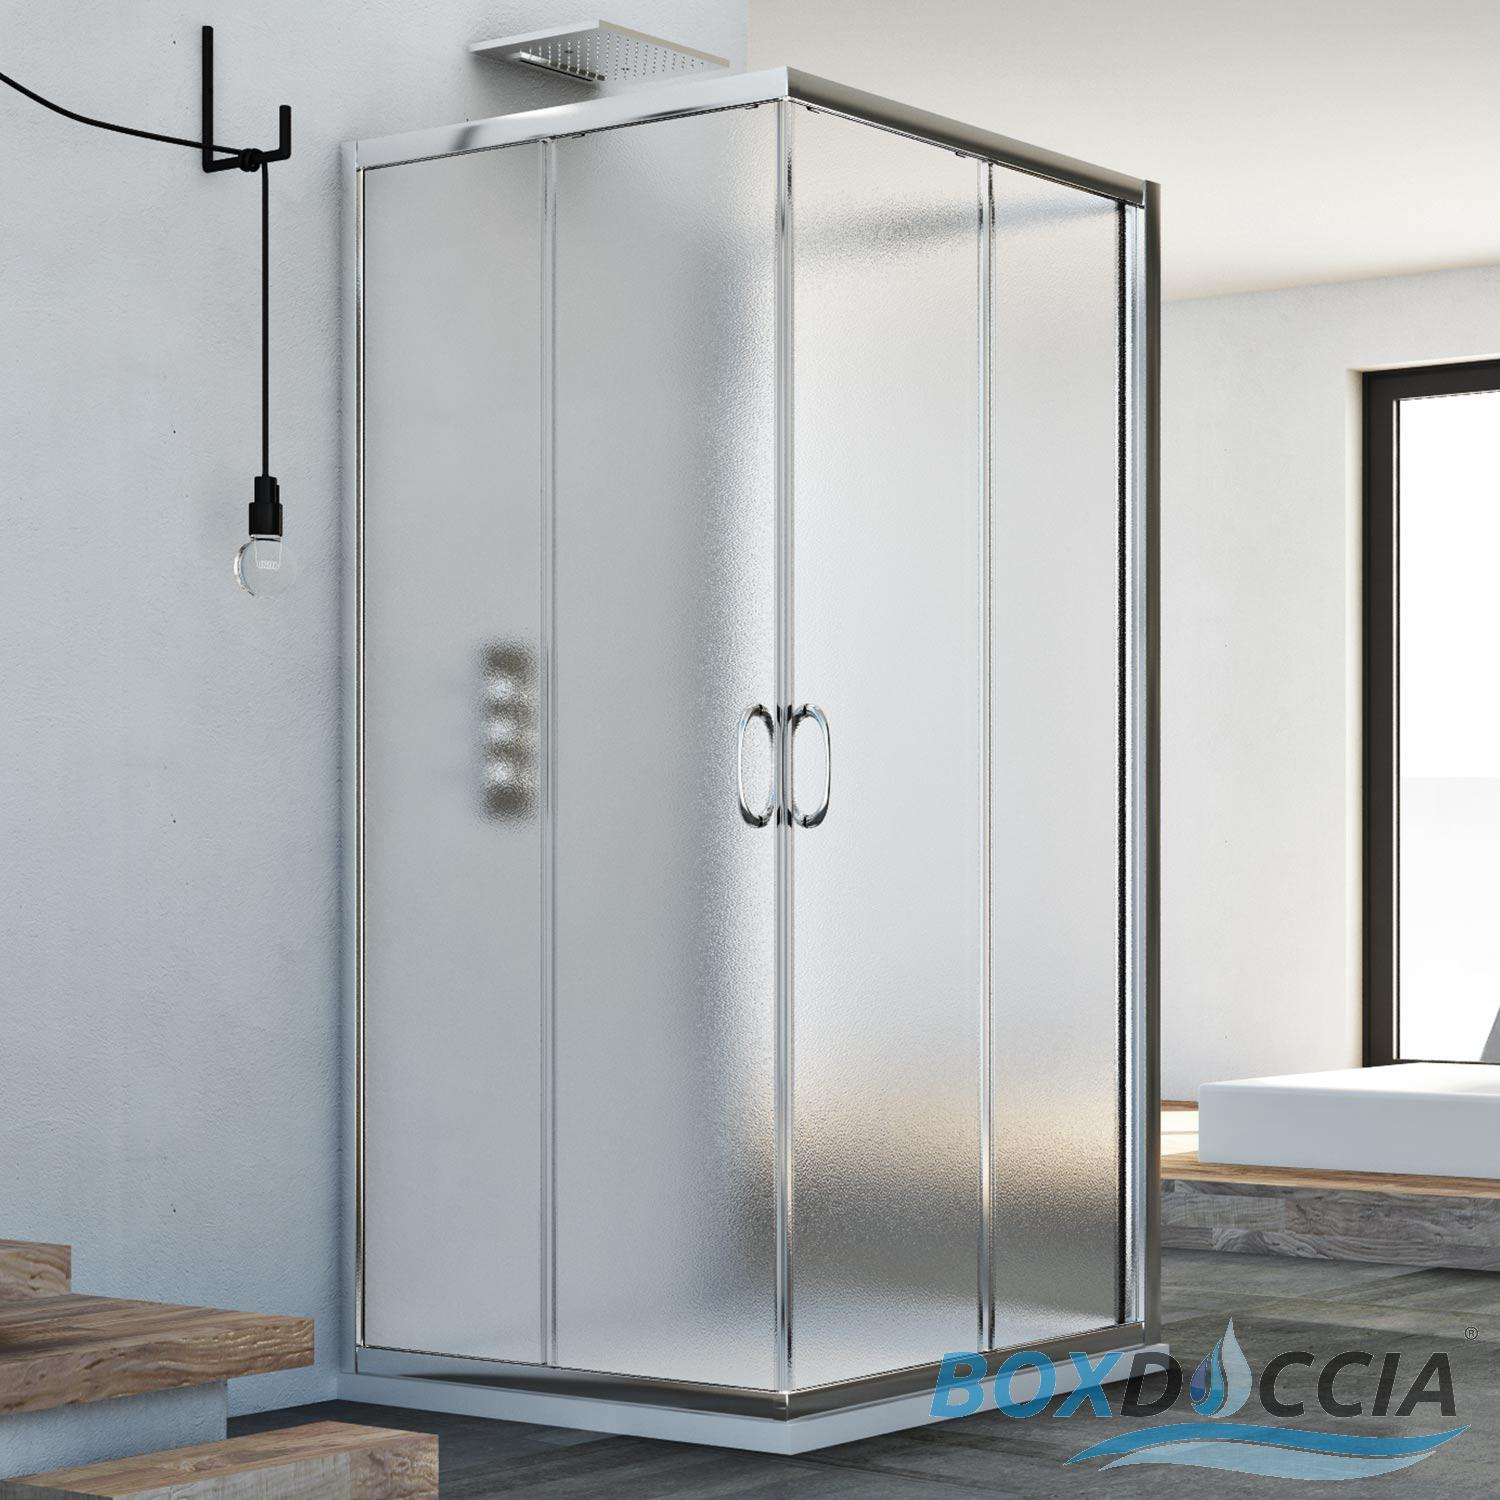 3-sided Shower Cubicle Enclosure 750x750x750 Mm Stippled Glass ...